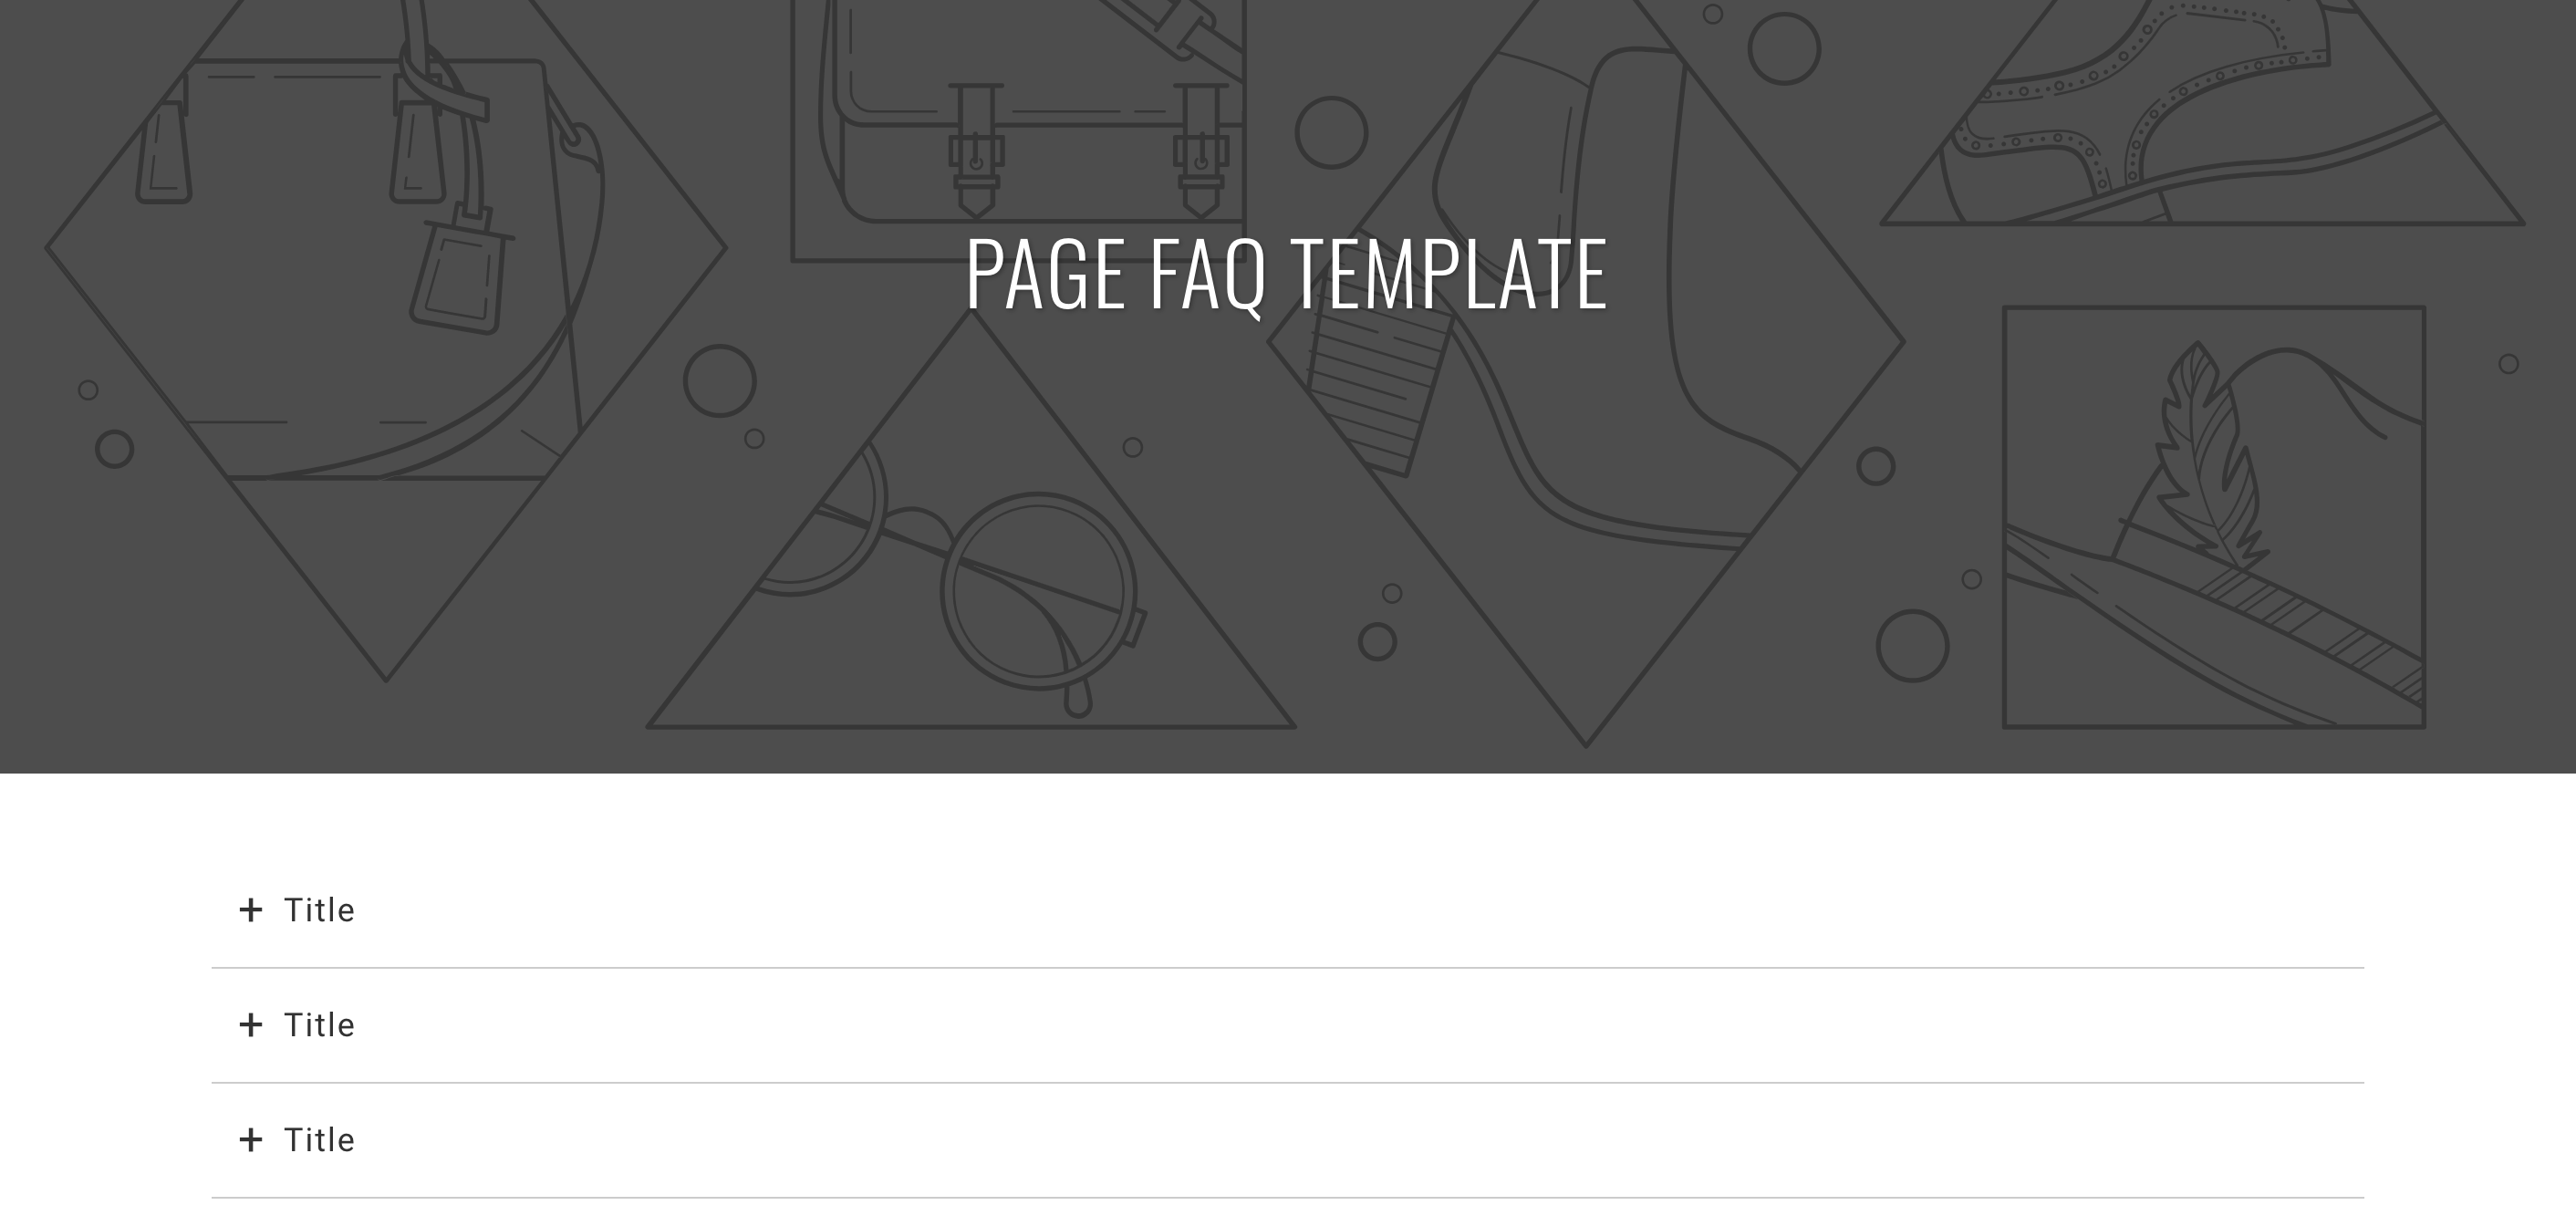 faq-template.png